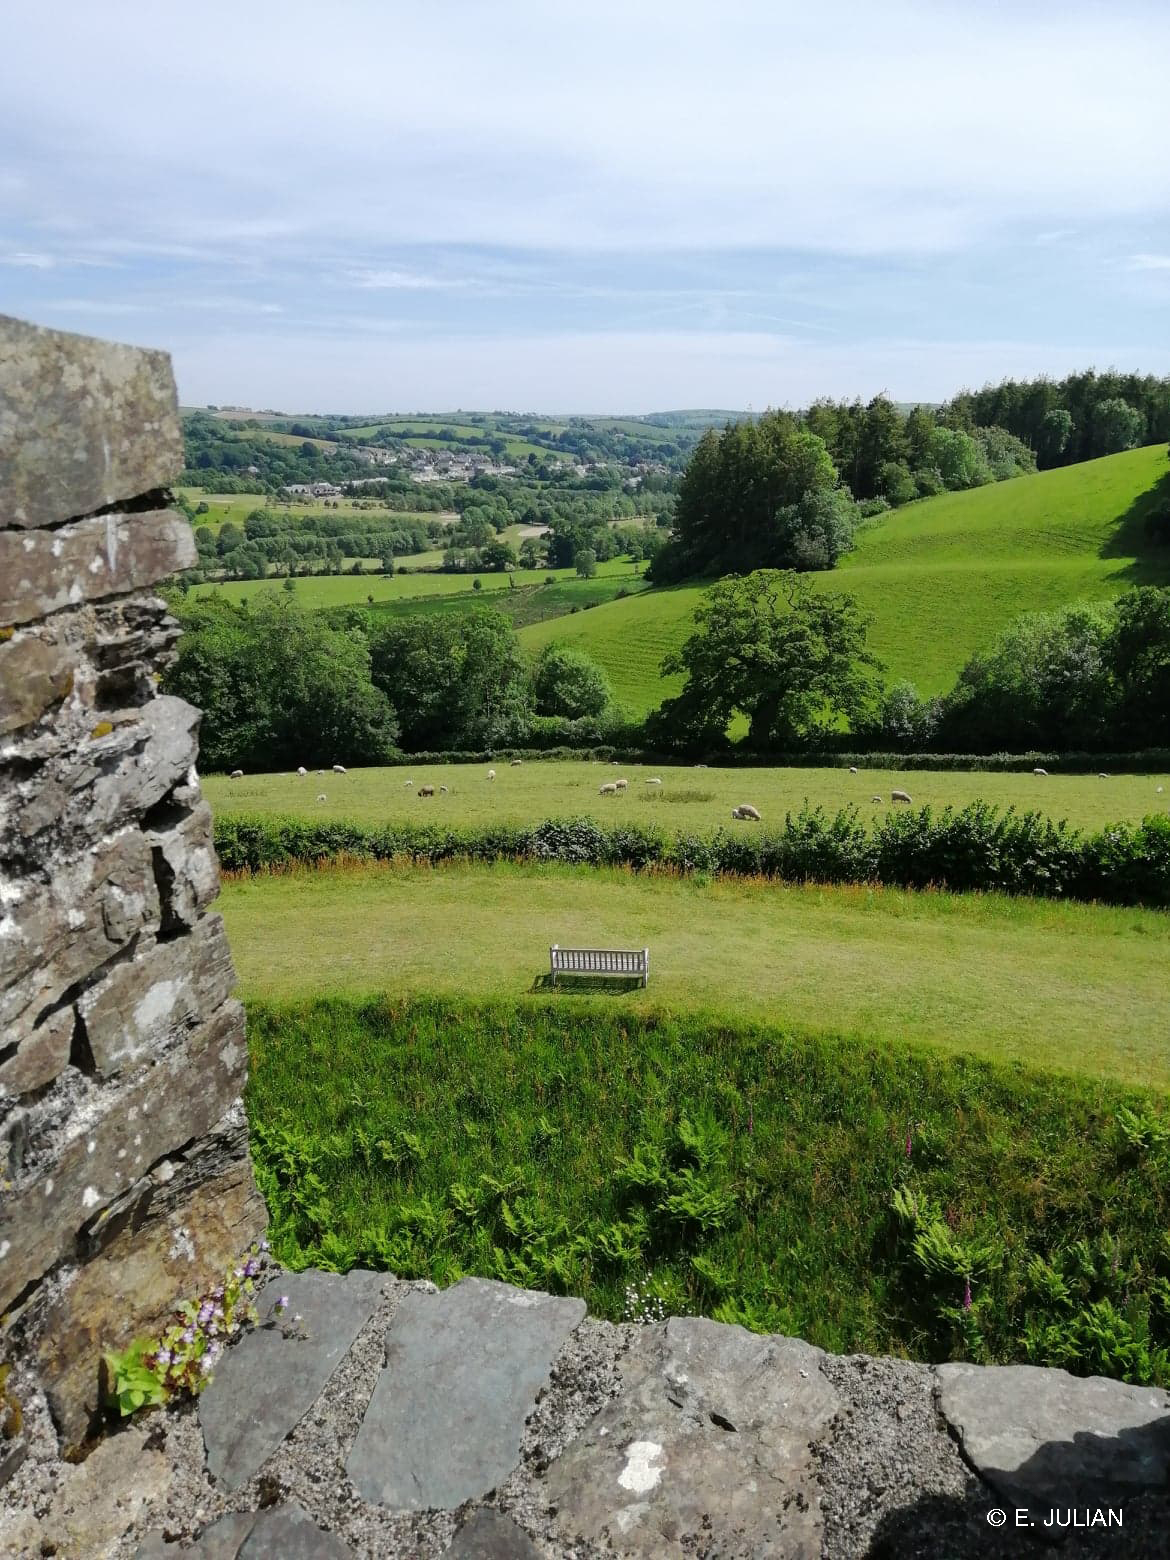 The view from the top of Restormel Castle towards Lostwithiel